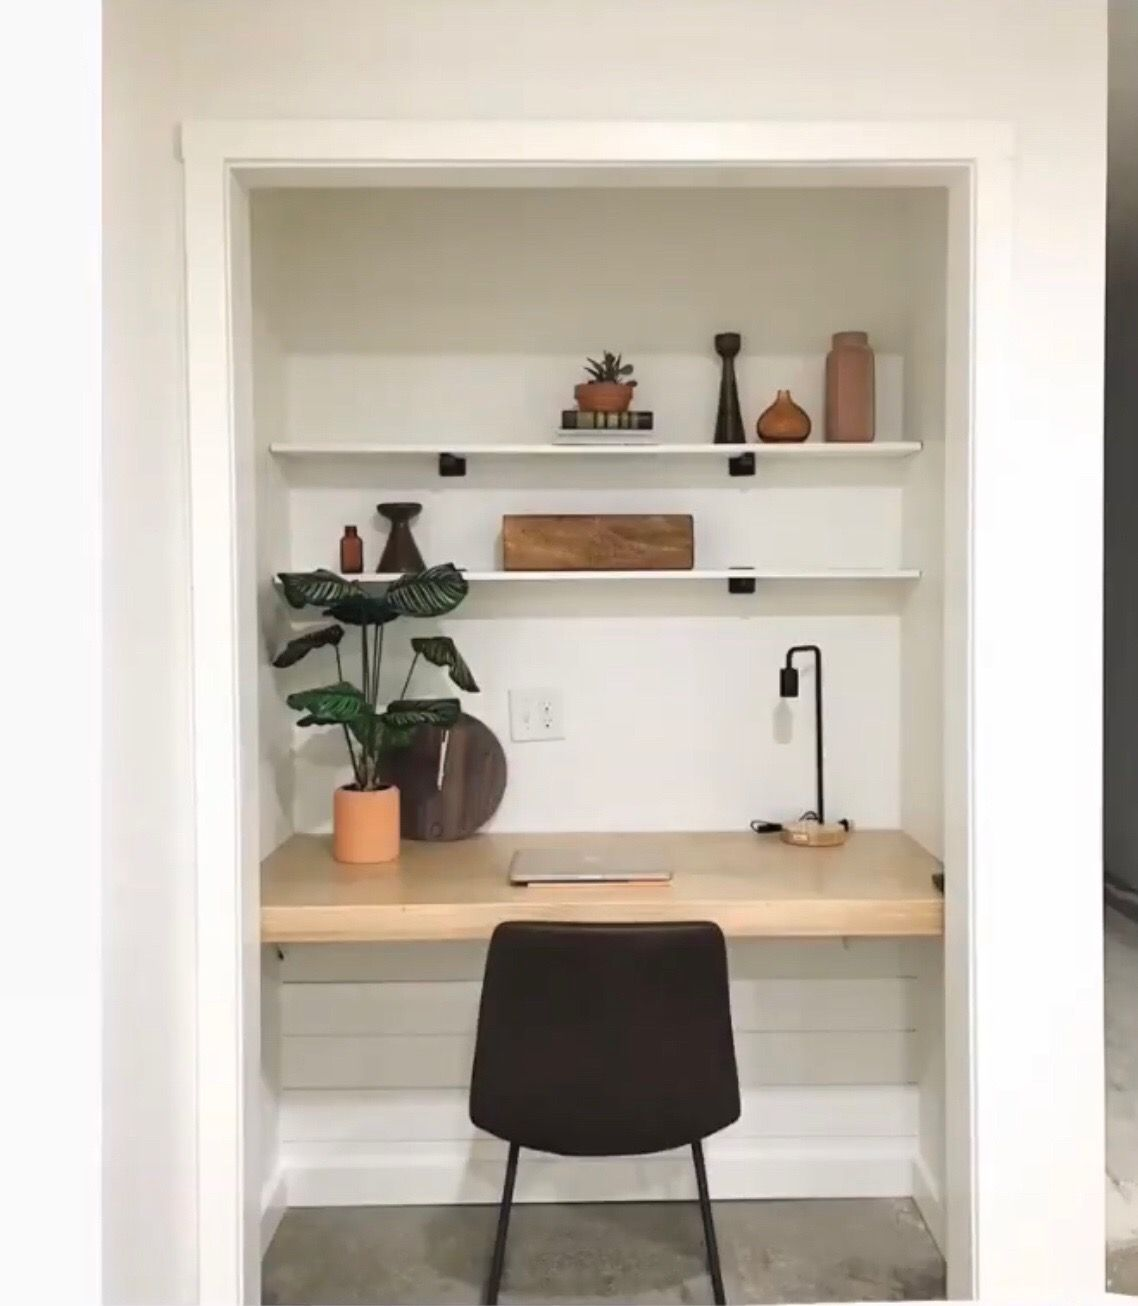 Convert closet into desk area my mom did this 30 years